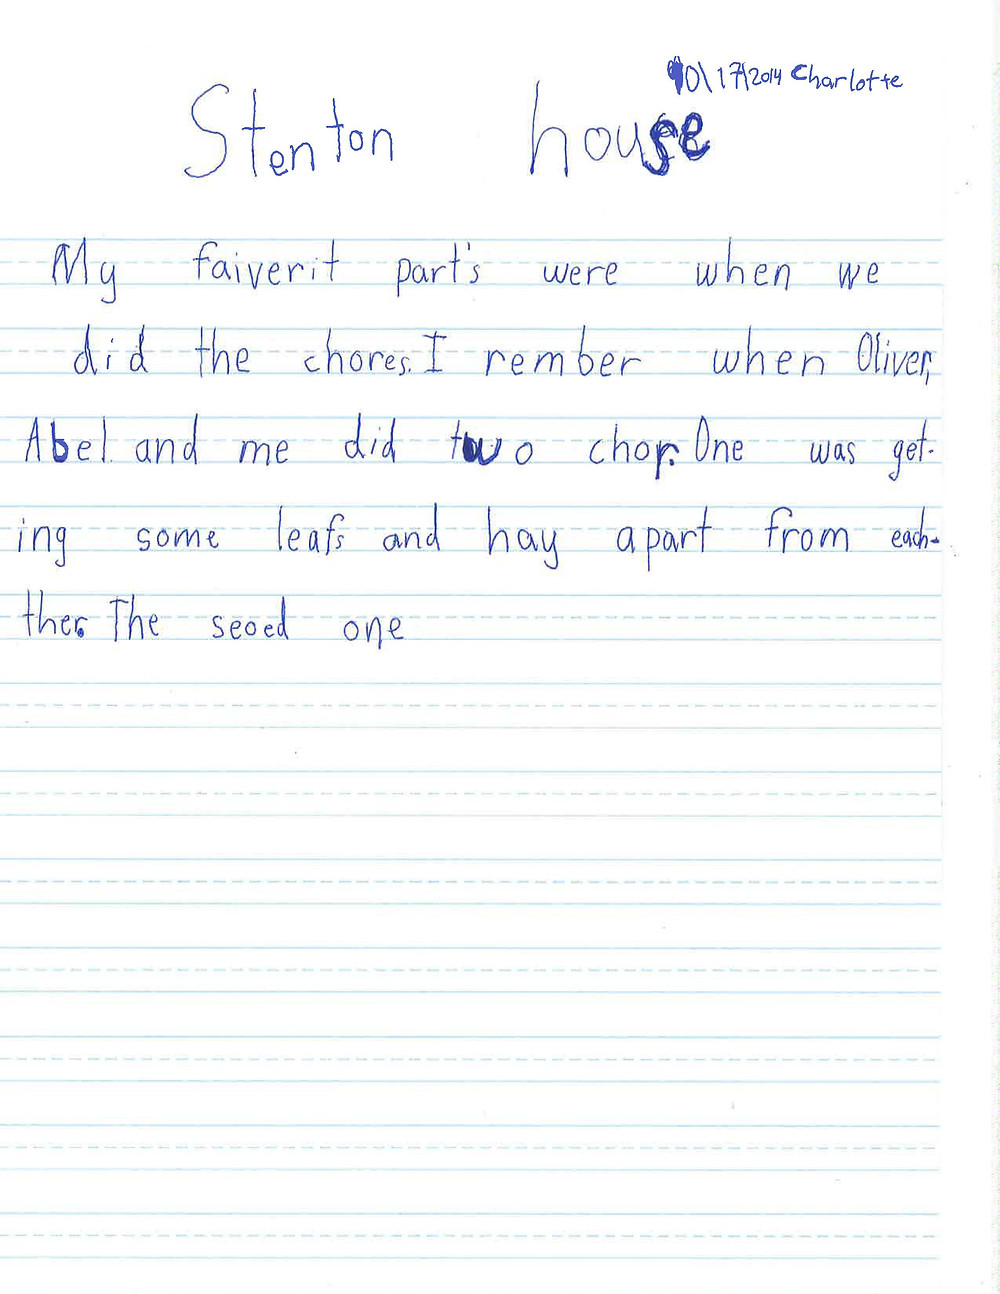 Stenton House Letters_Page_06.jpg